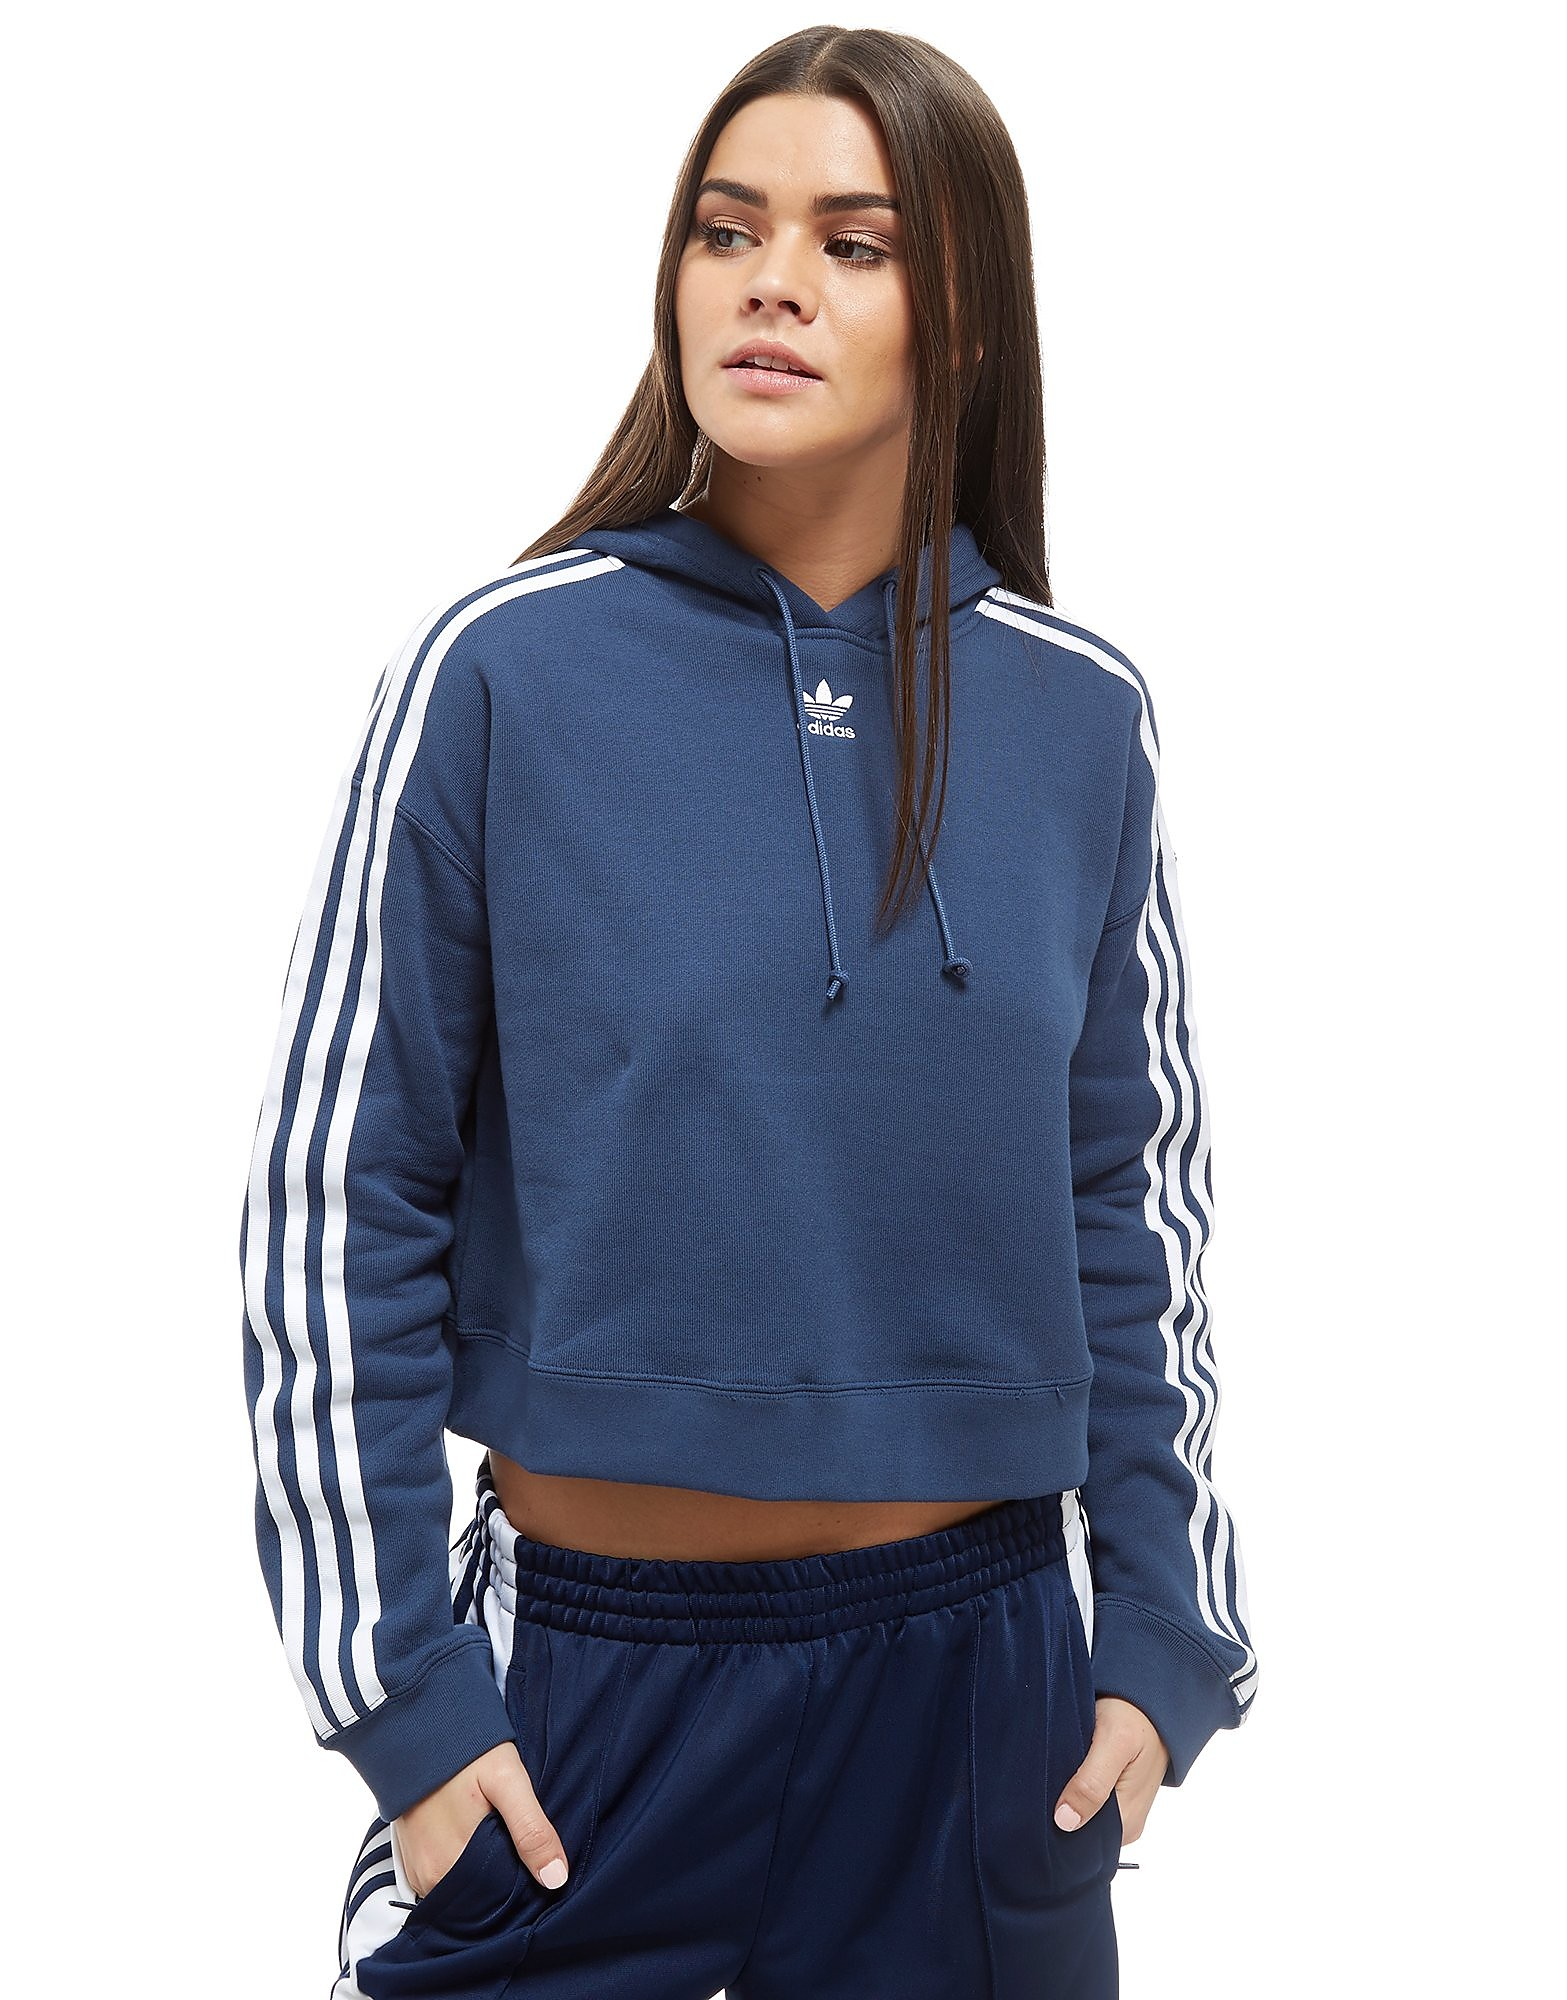 adidas Originals Cropped California Hoodie - Blue/White - Womens, Blue/White